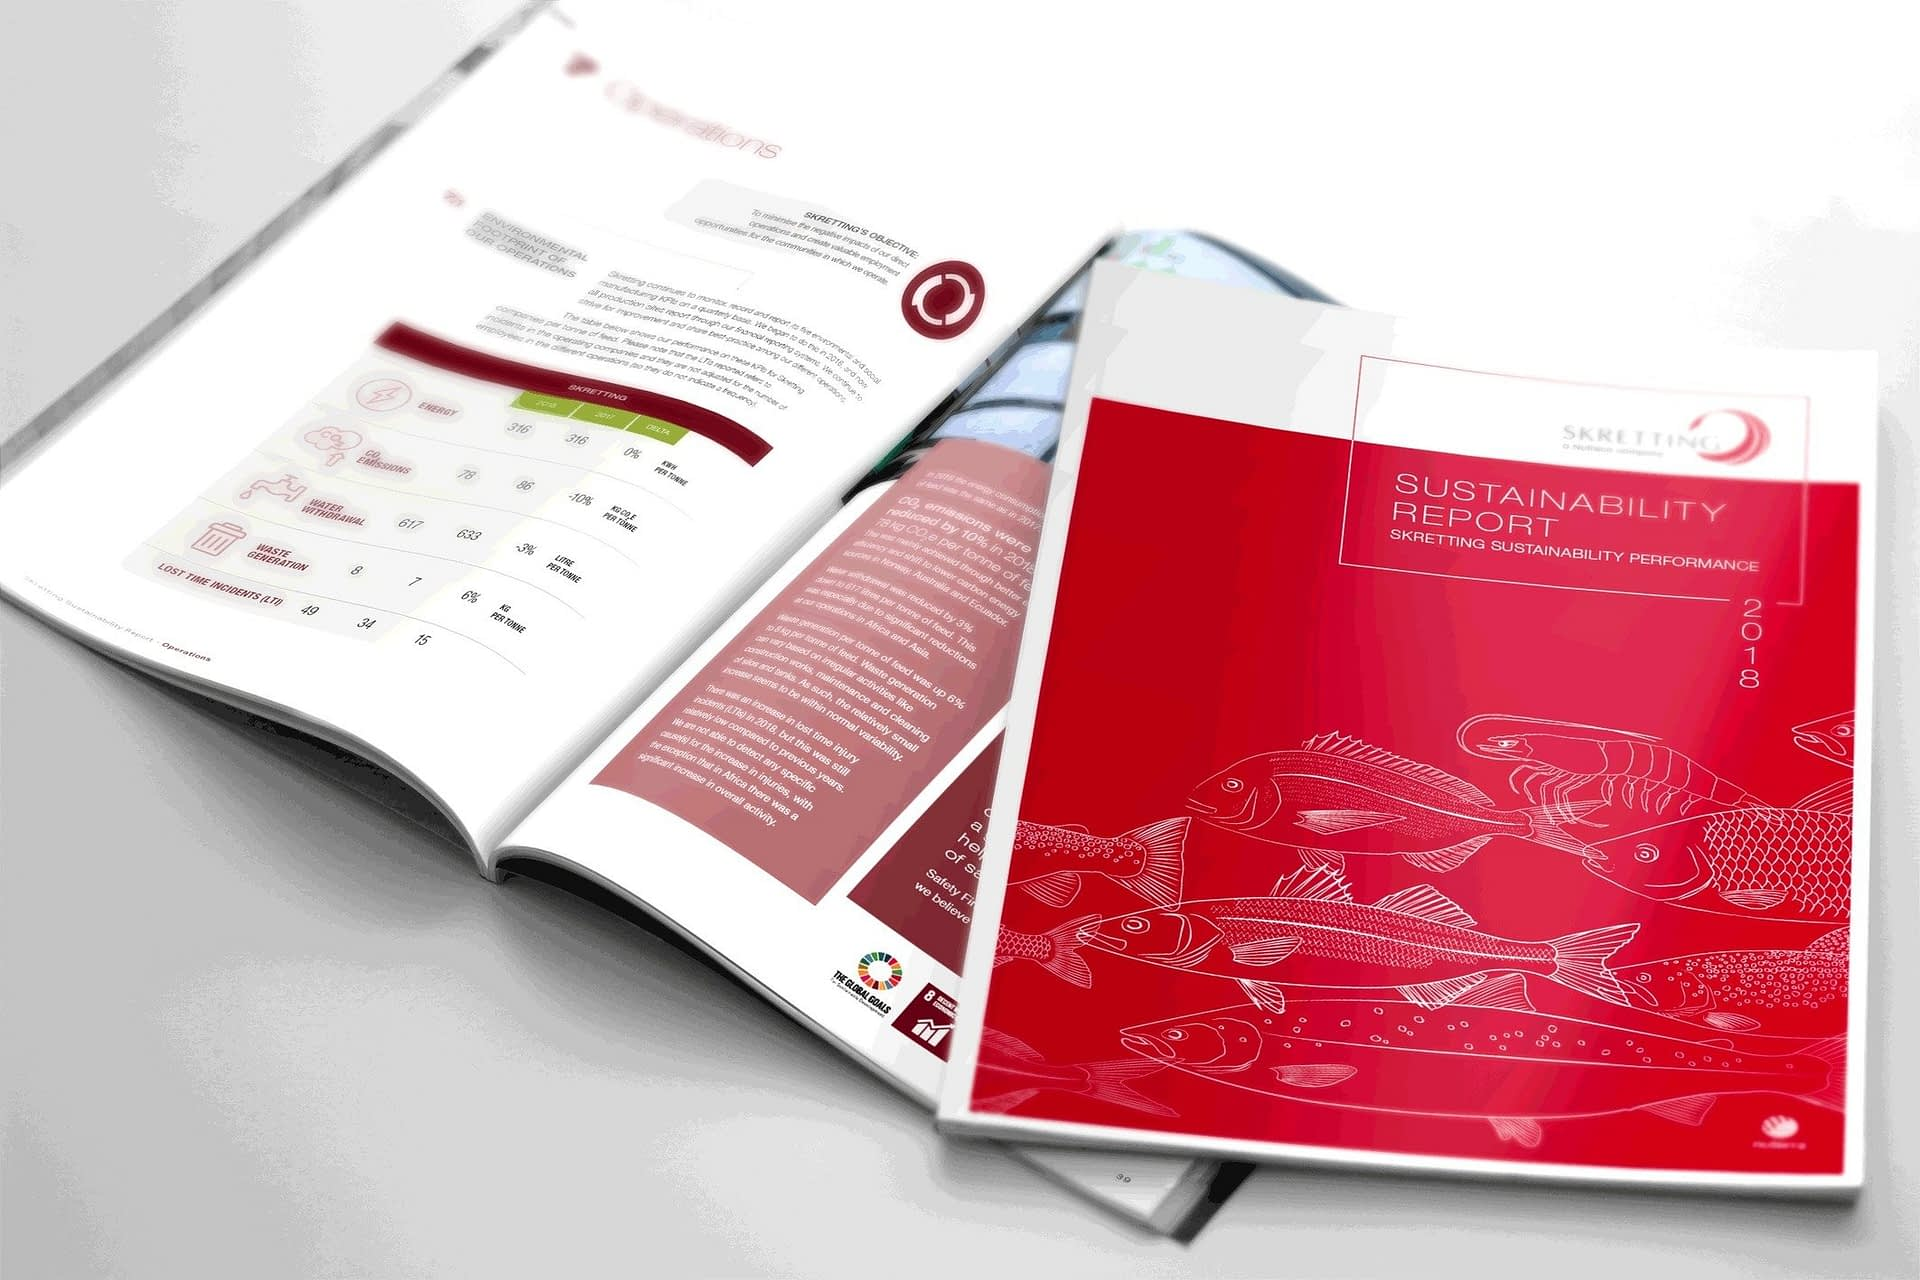 , Skretting Sustainability Report highlights wins and challenges in 2018, TheCircularEconomy.com